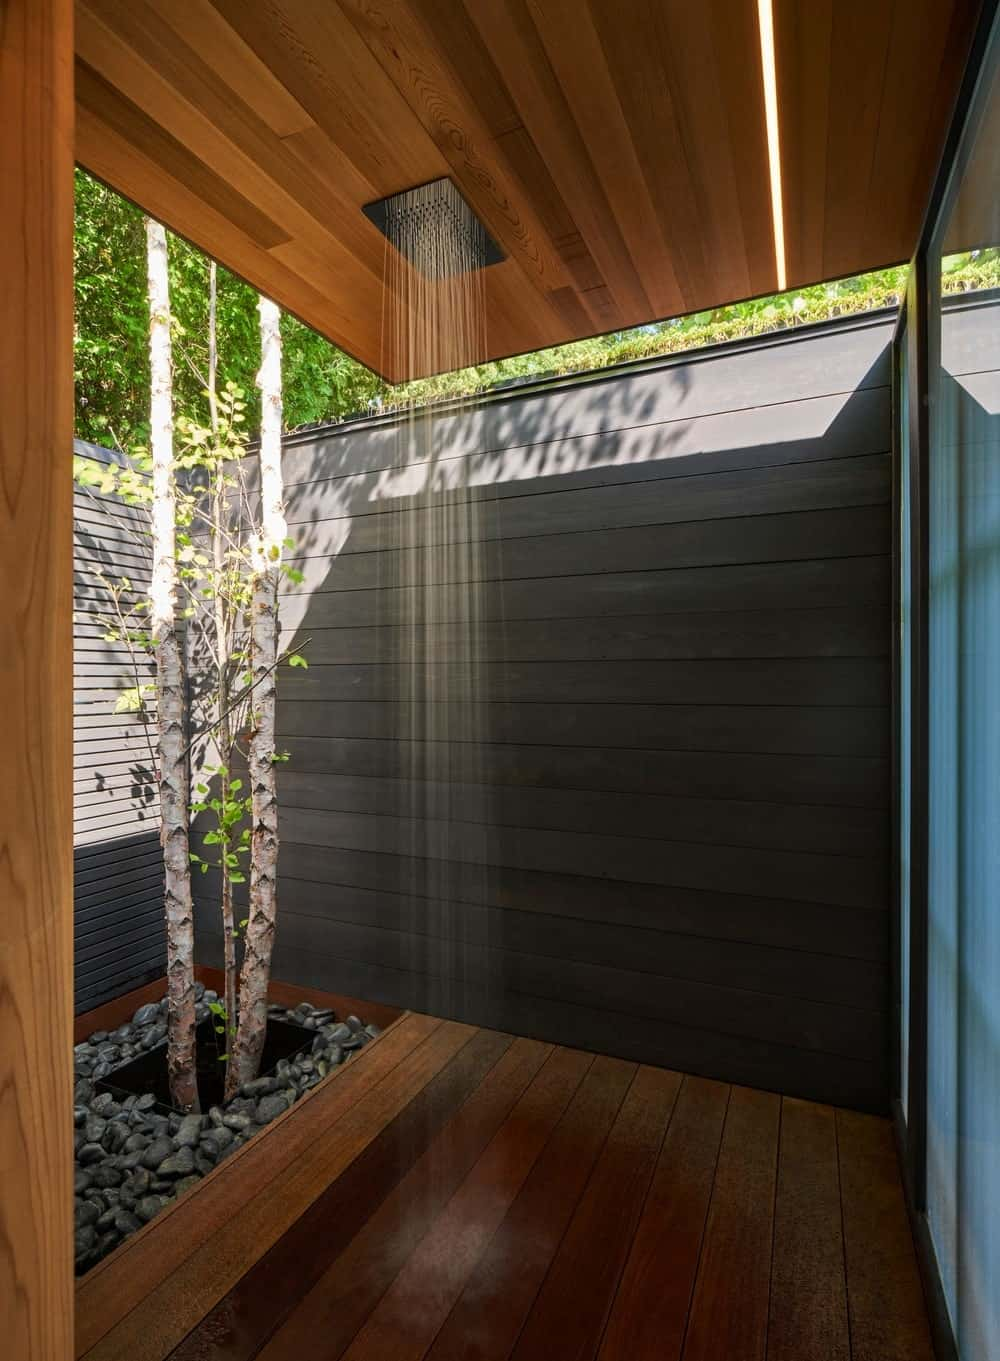 Shower area in the Forest Hill Garden & Pavilion designed by Amantea Architects.